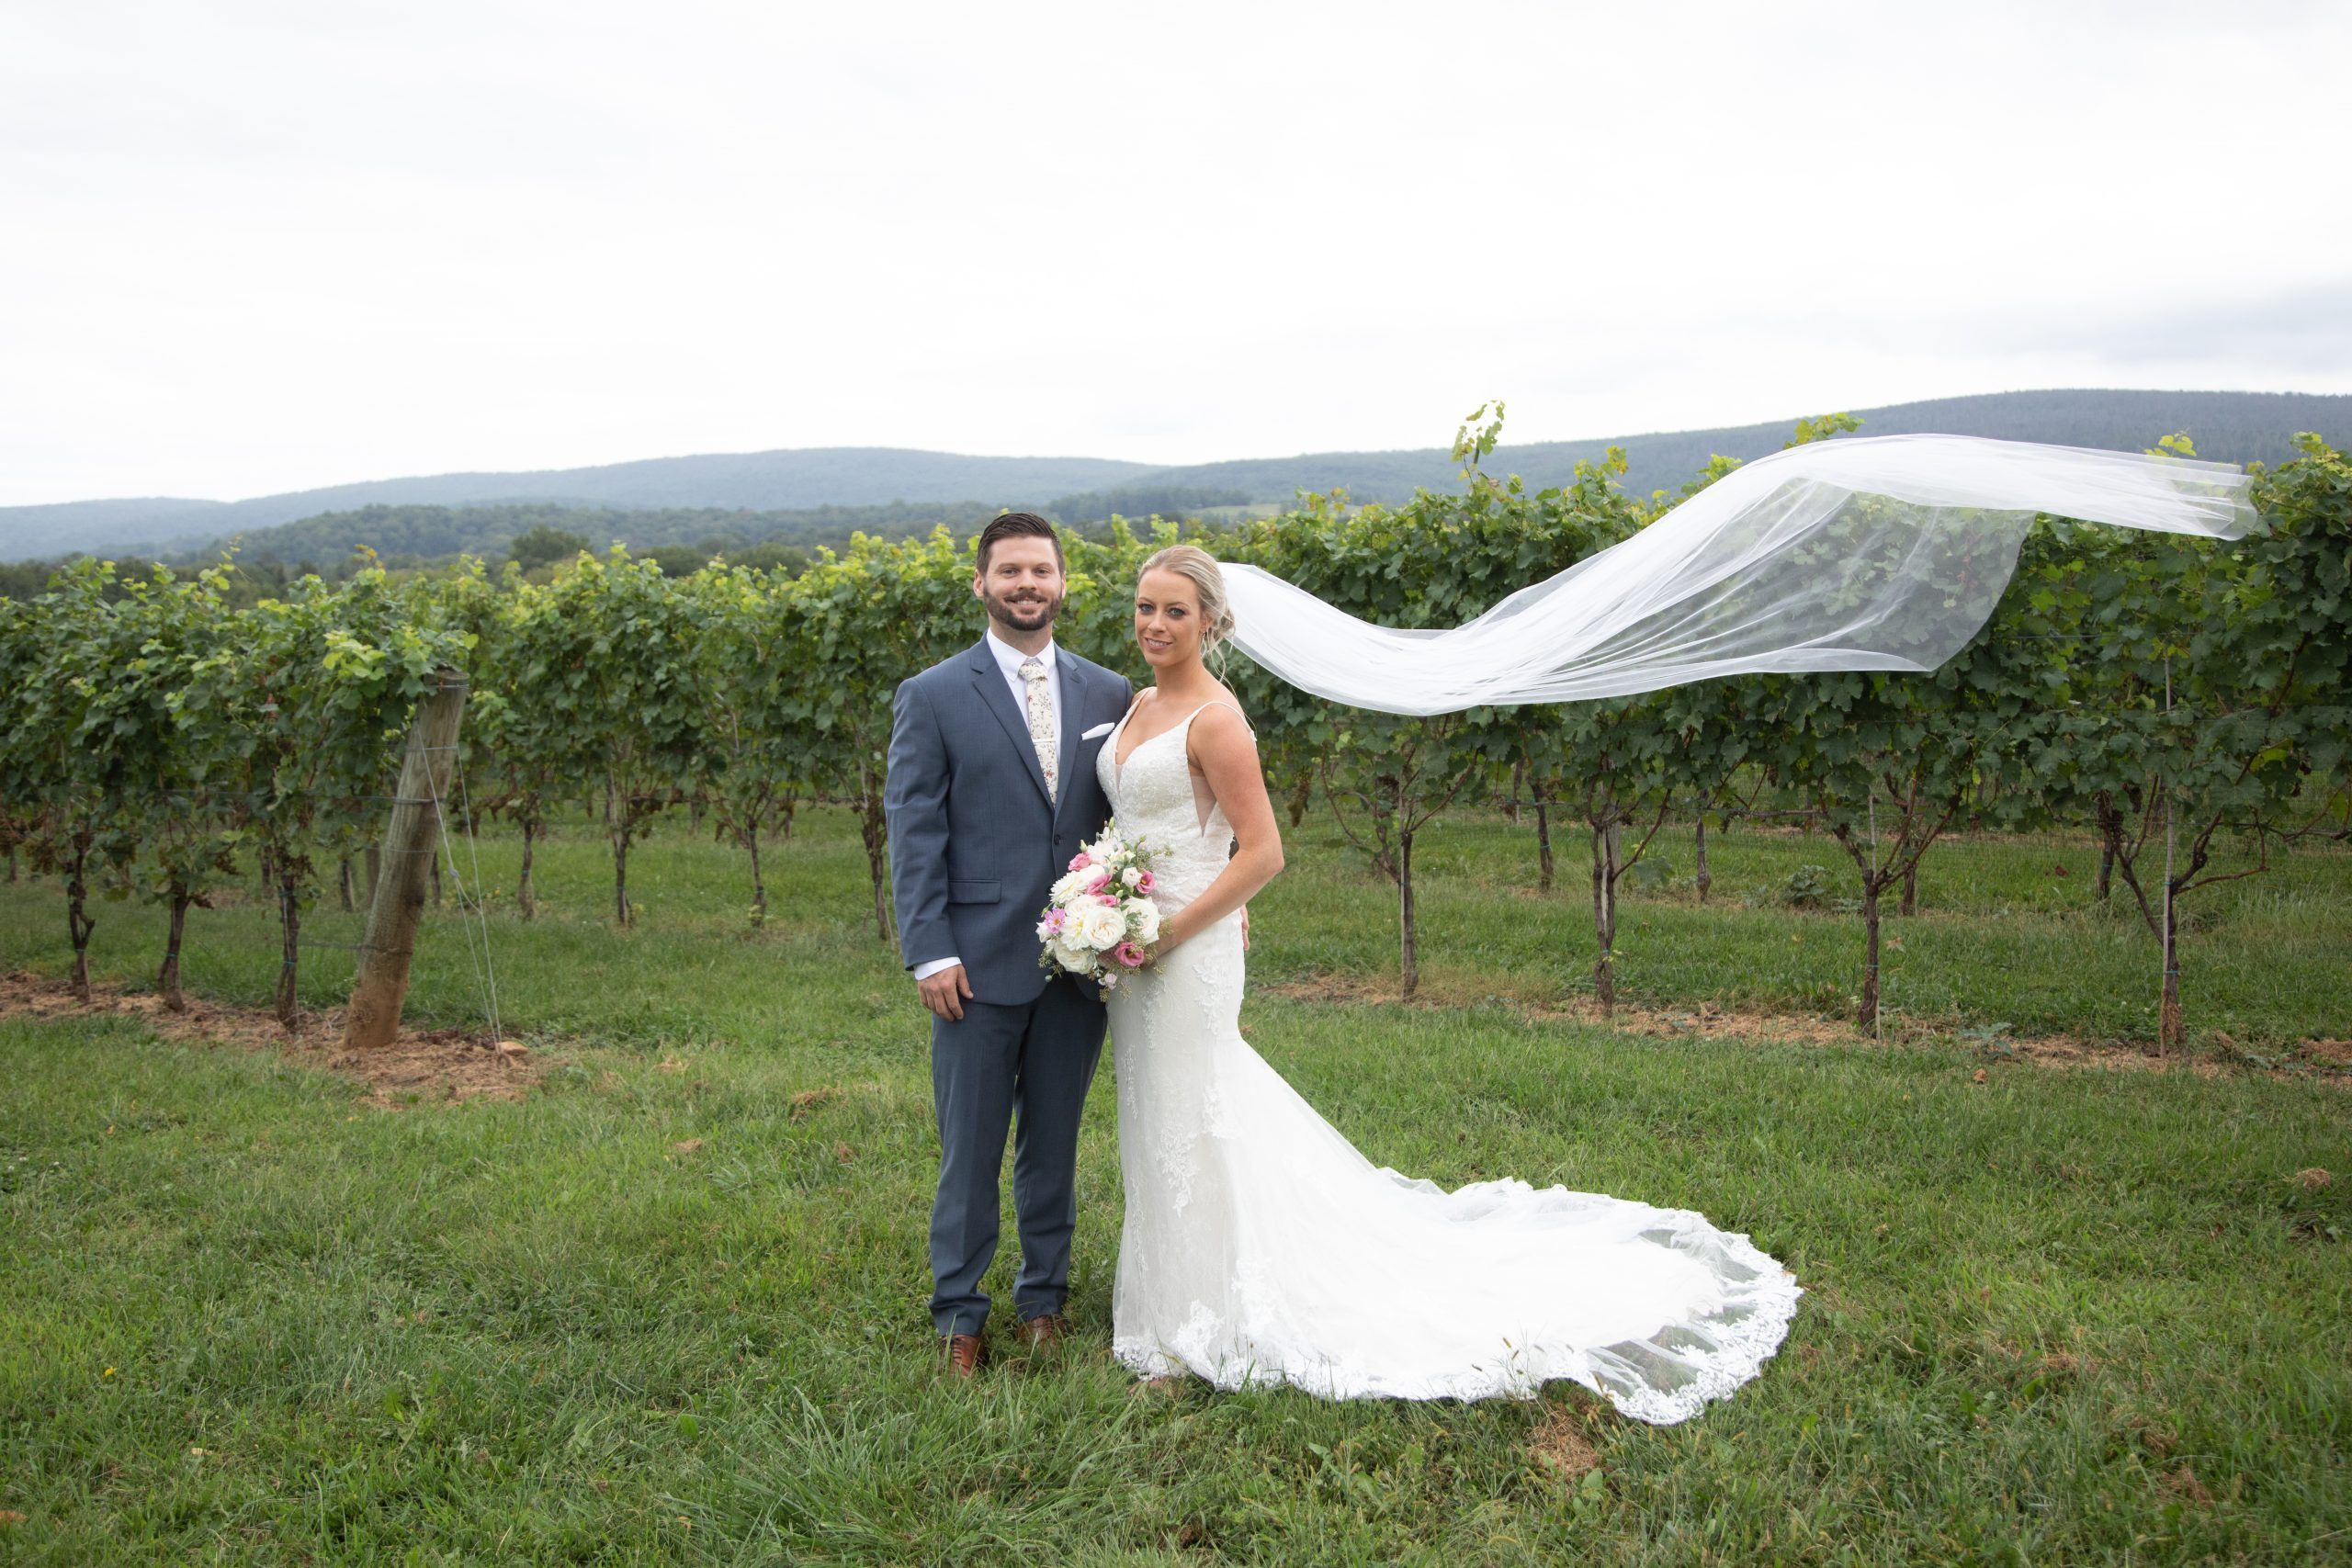 Kalero Vineyard wedding photographs, Stephanie Leigh Photography & Design